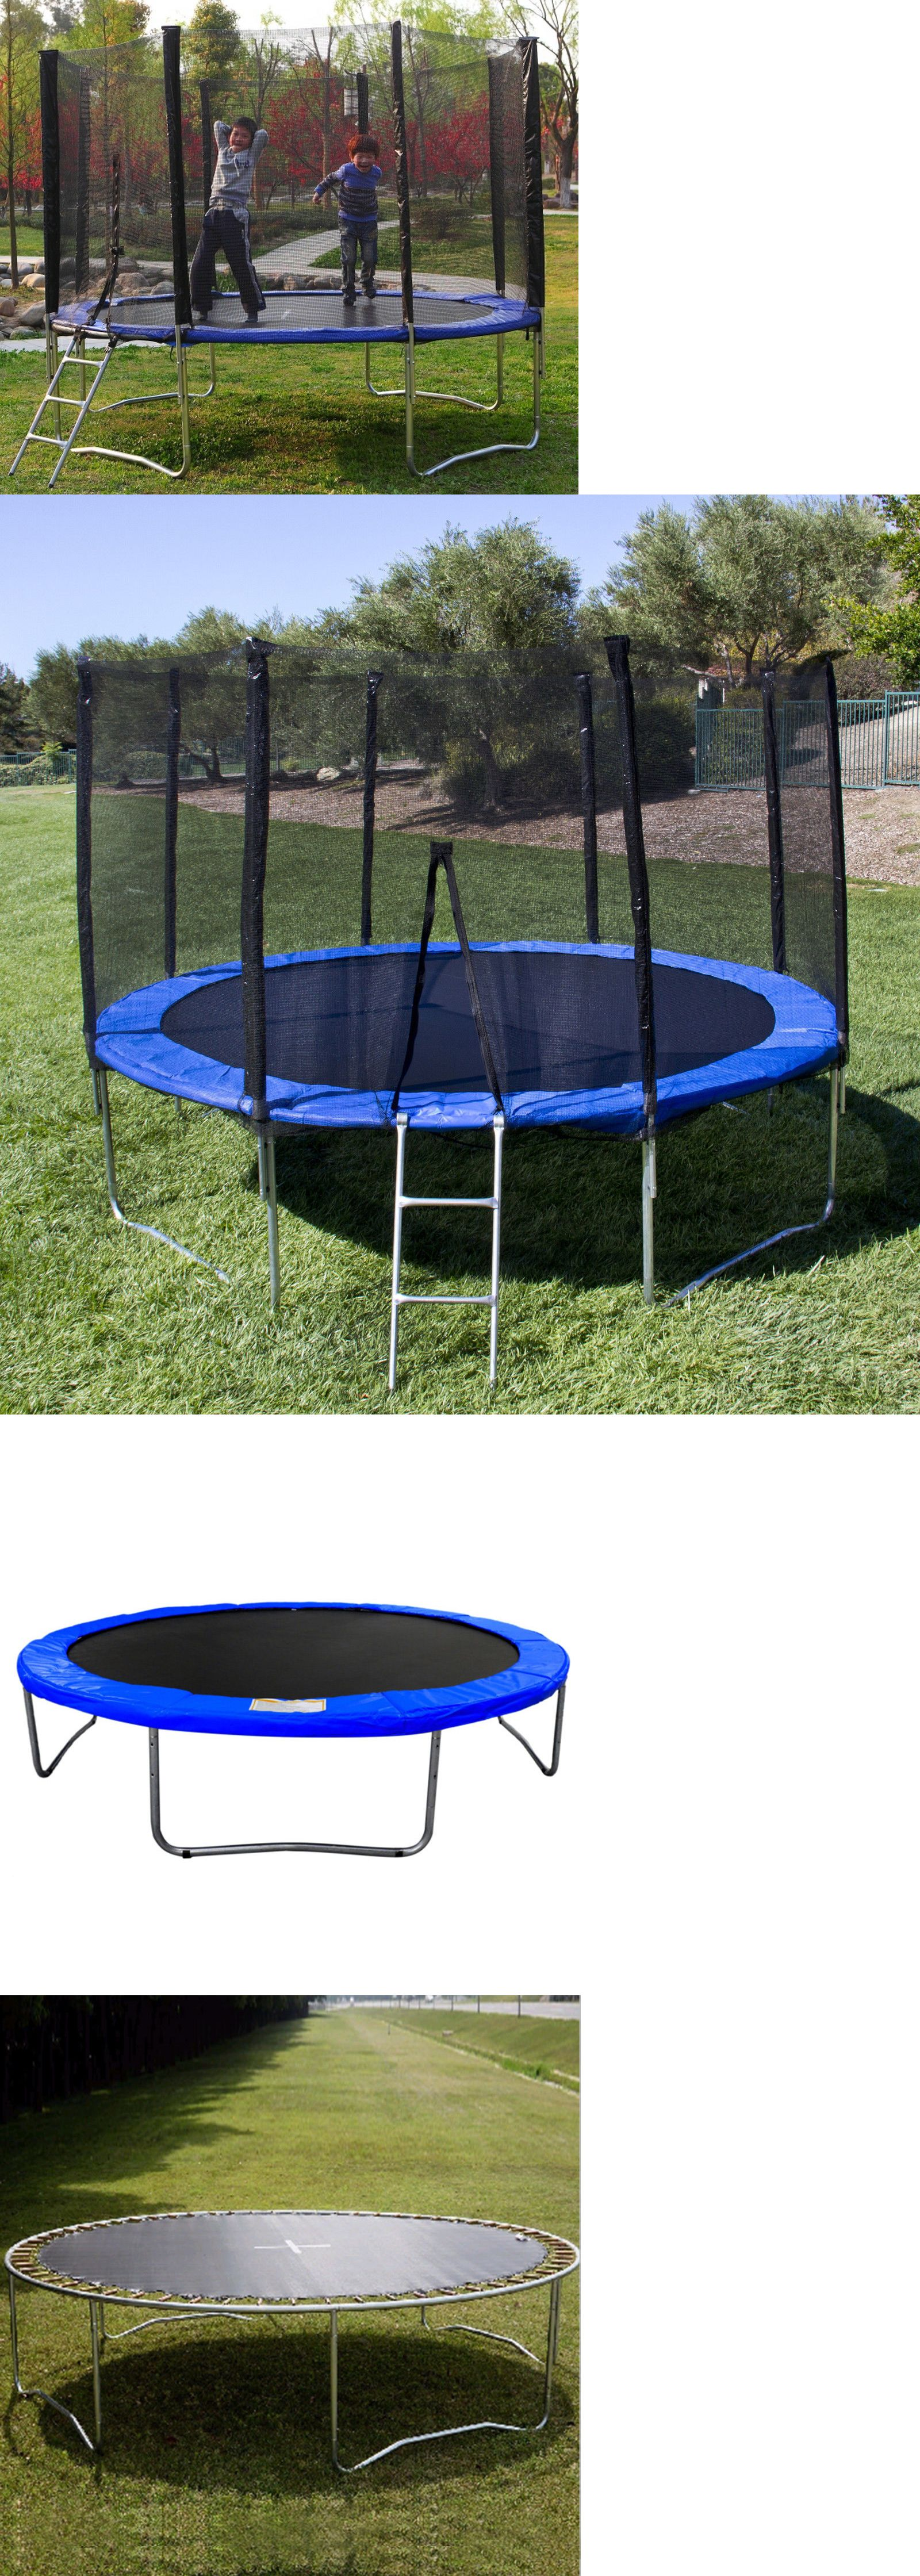 Trampolines 145999 Blue 12 Ft Round Trampoline With Safety Net Enclosure Ladder And Frame Safe Buy It Now Onl Trampoline Best Trampoline Kids Trampoline